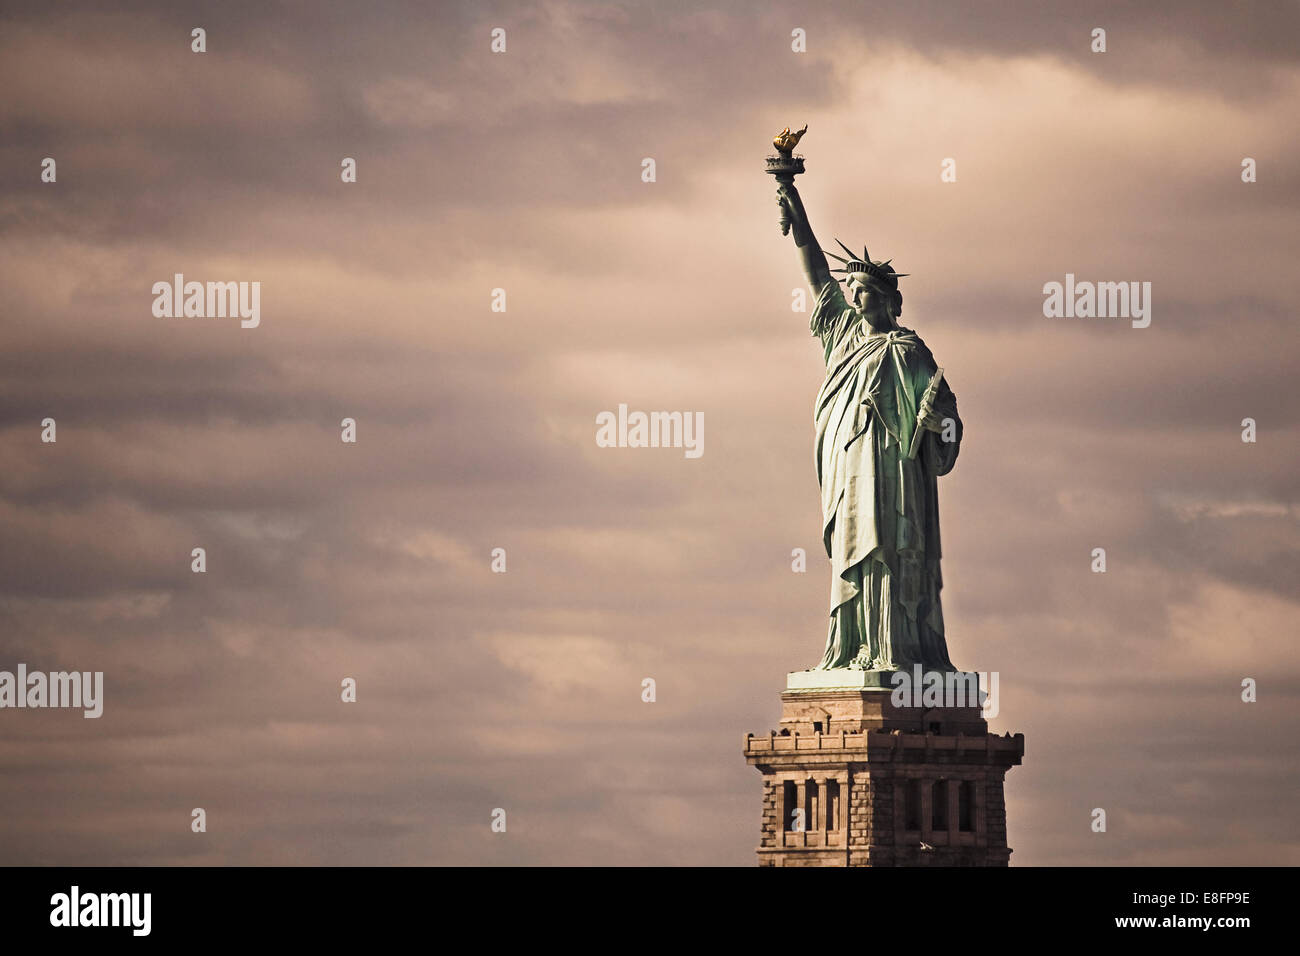 USA, New York State, New York City, Statue Of Liberty Stock Photo